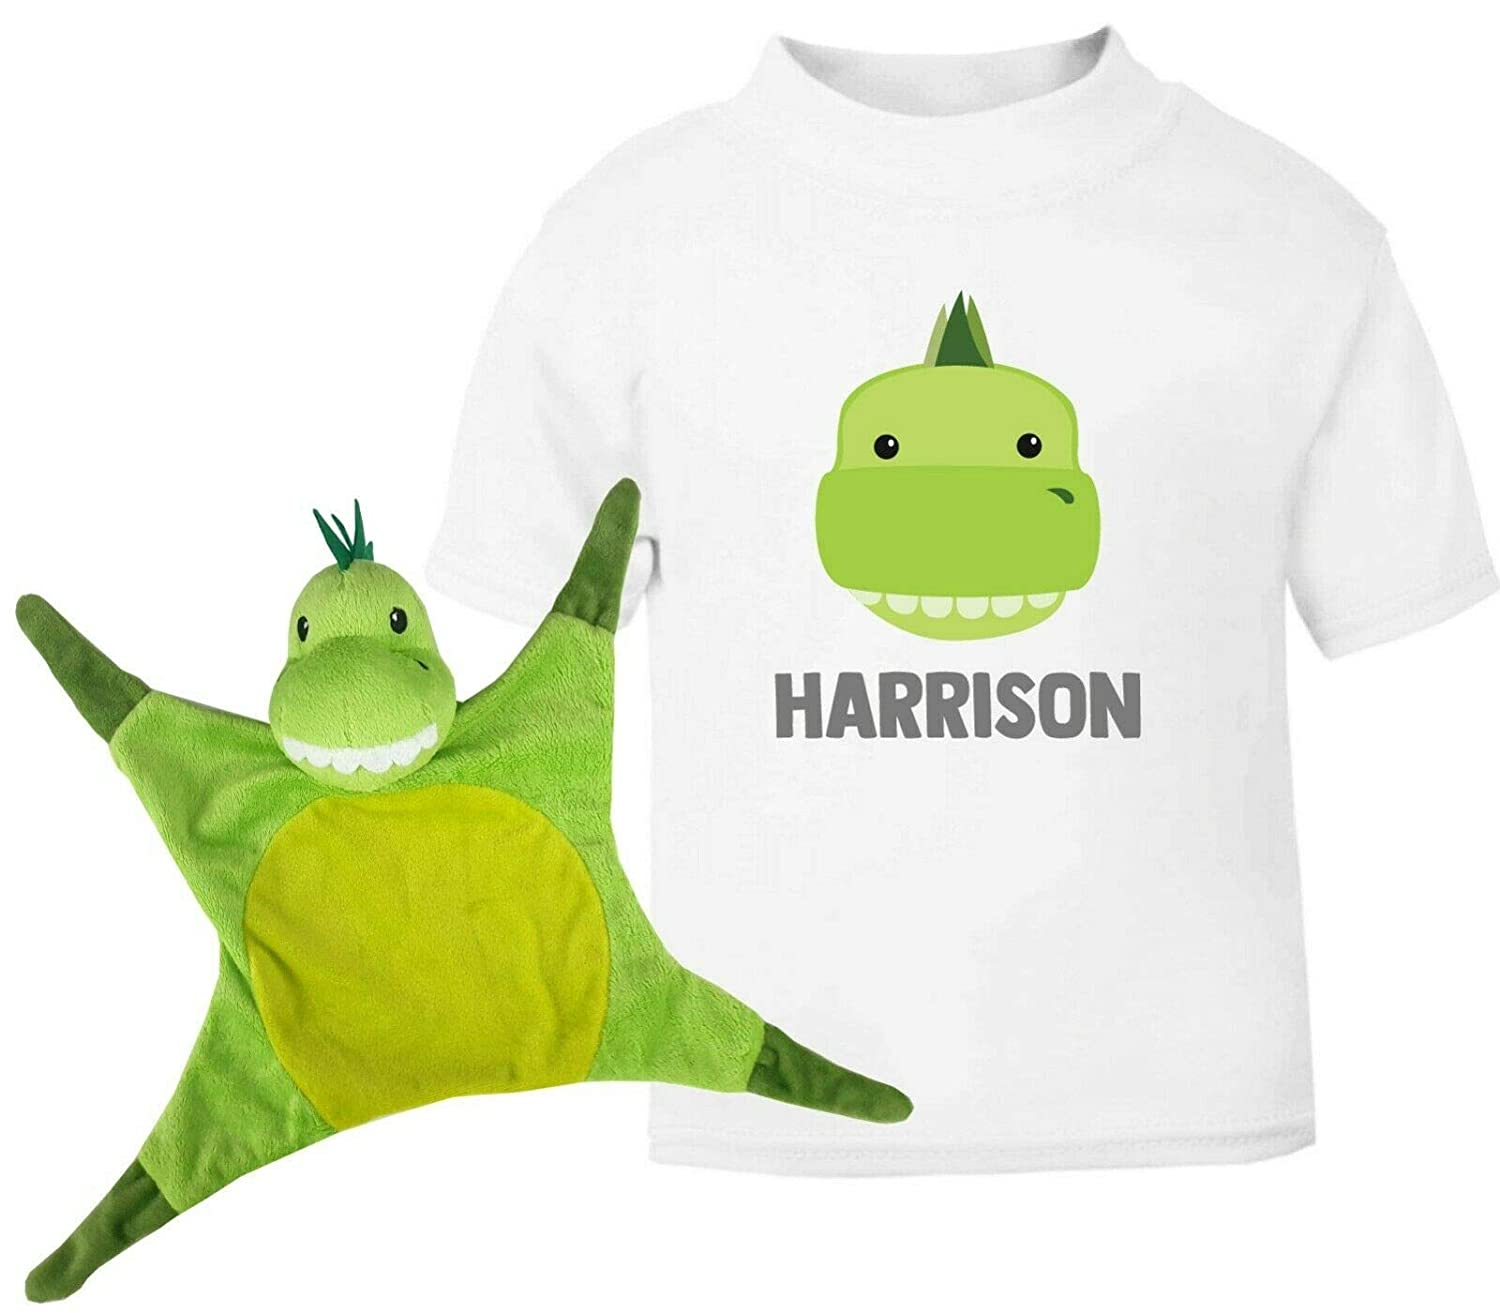 Absolutely Top Personalised Dinosaur Baby Grow T-Shirt Snuggle Blanket Snuggle Comforter Baby Boys Toy Gift Set